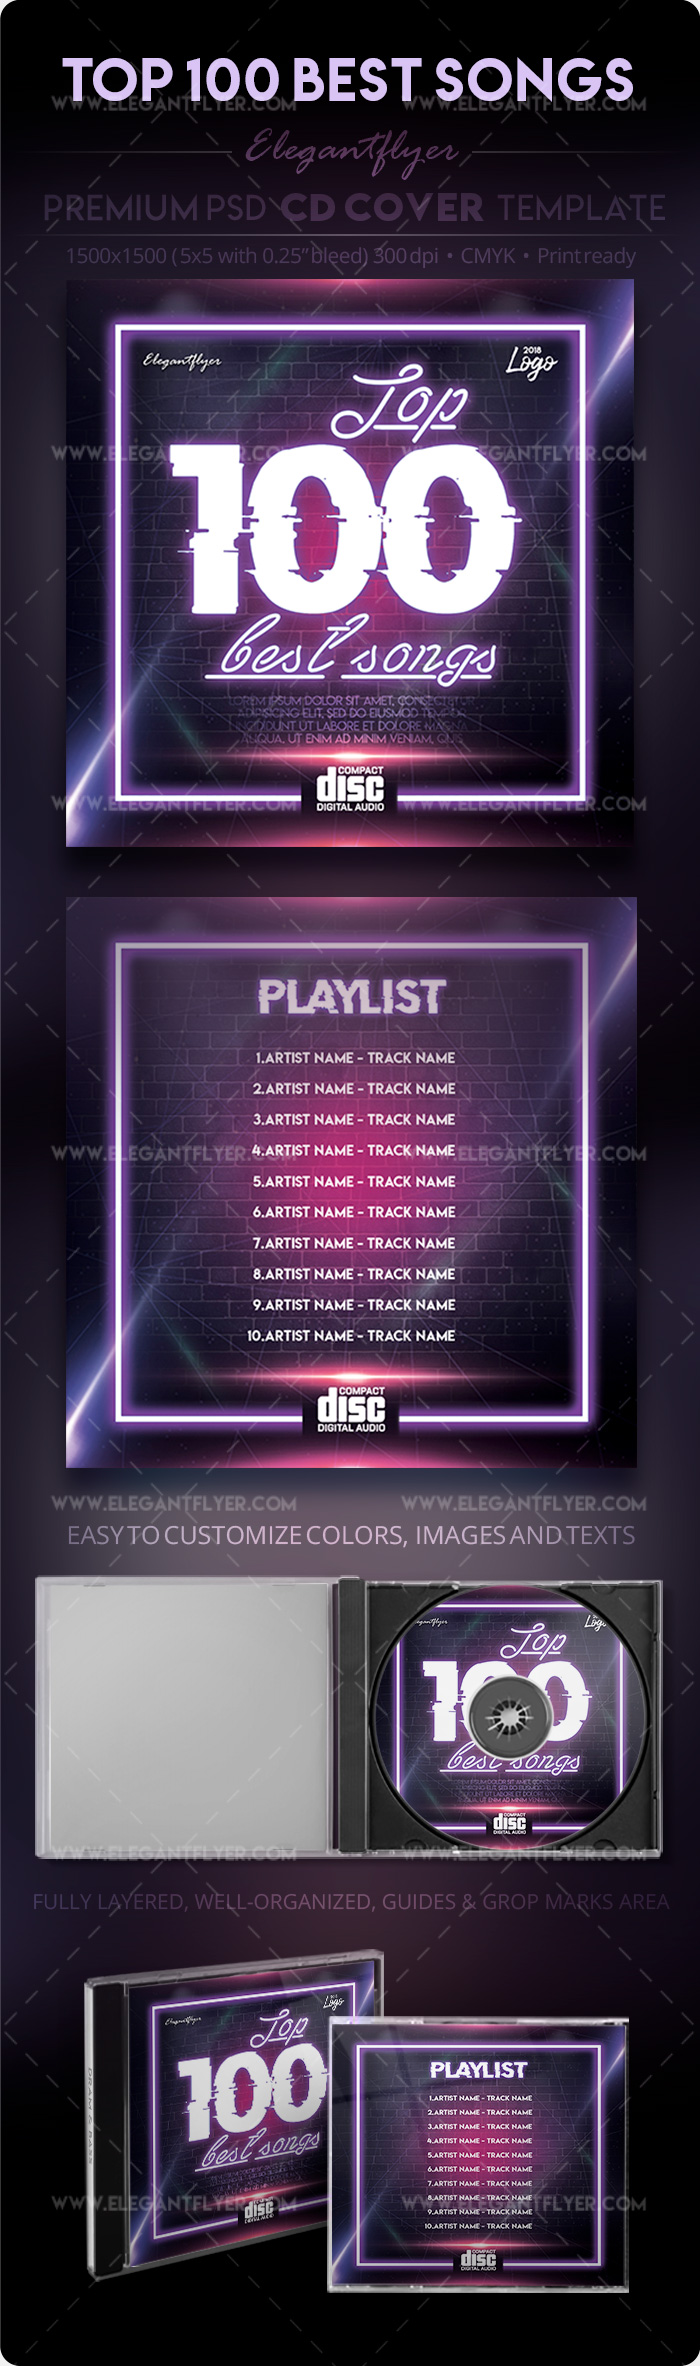 TOP 100 Best Songs – Premium PSD CD Cover